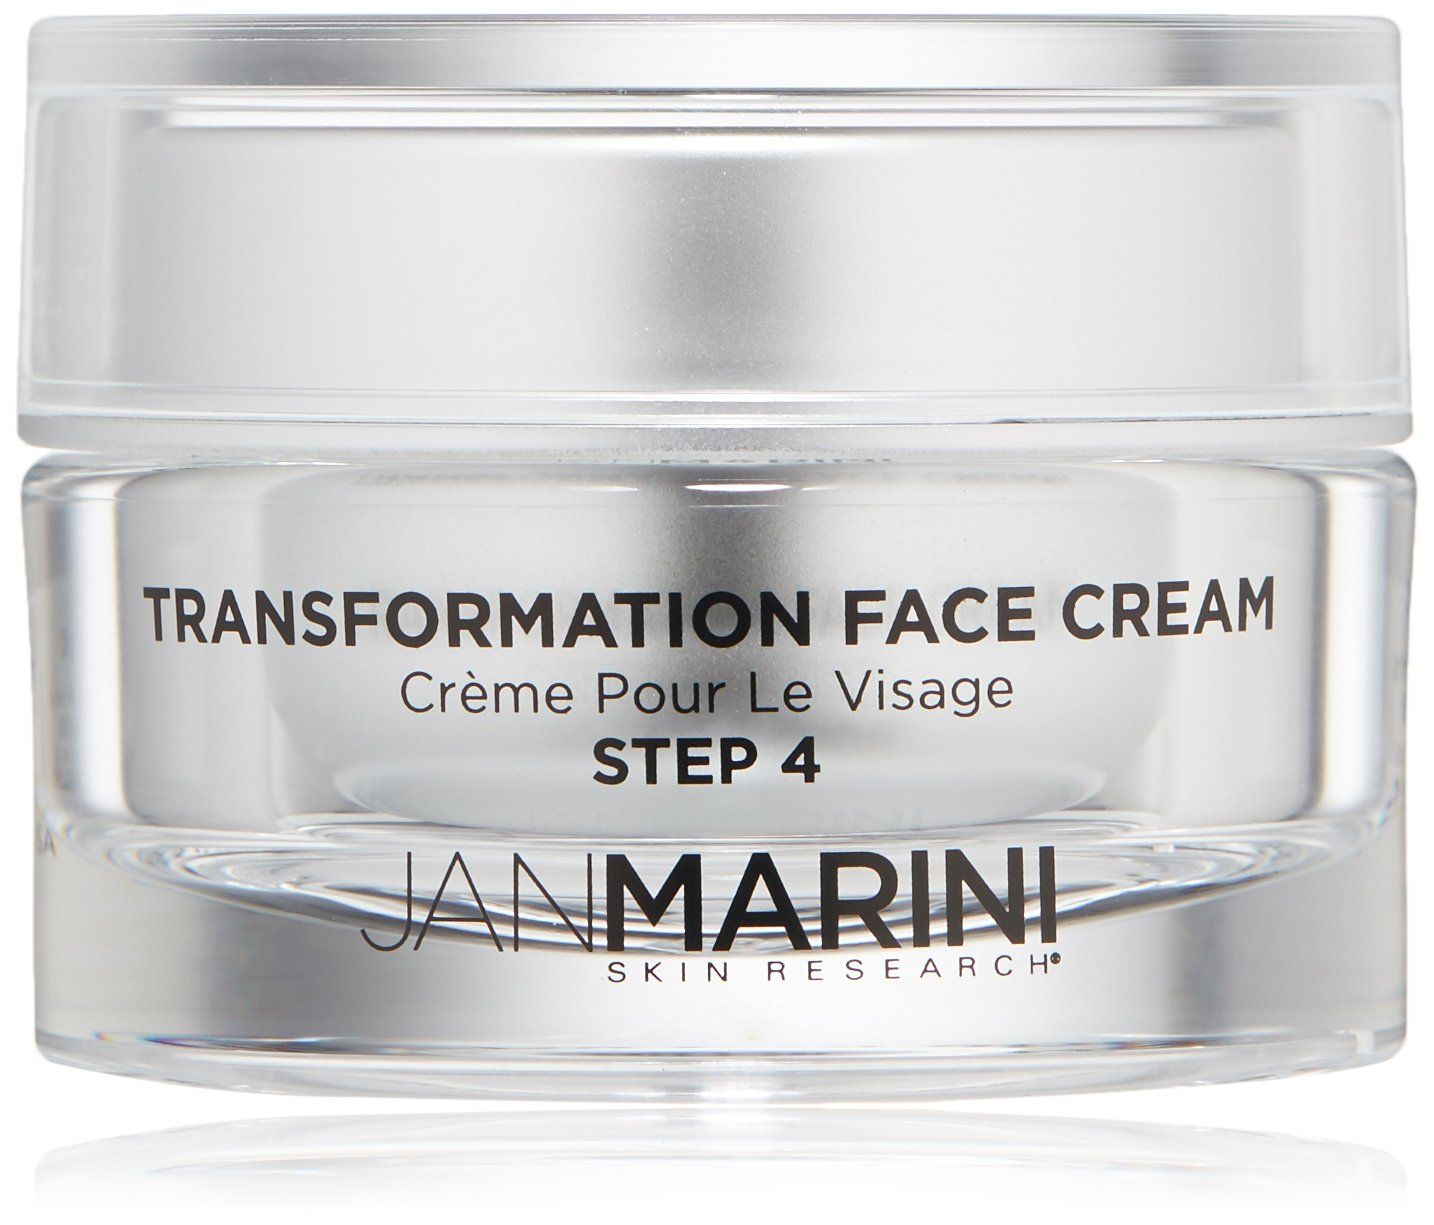 Jan Marini Skin Research Transformation Face Cream, 1 oz.